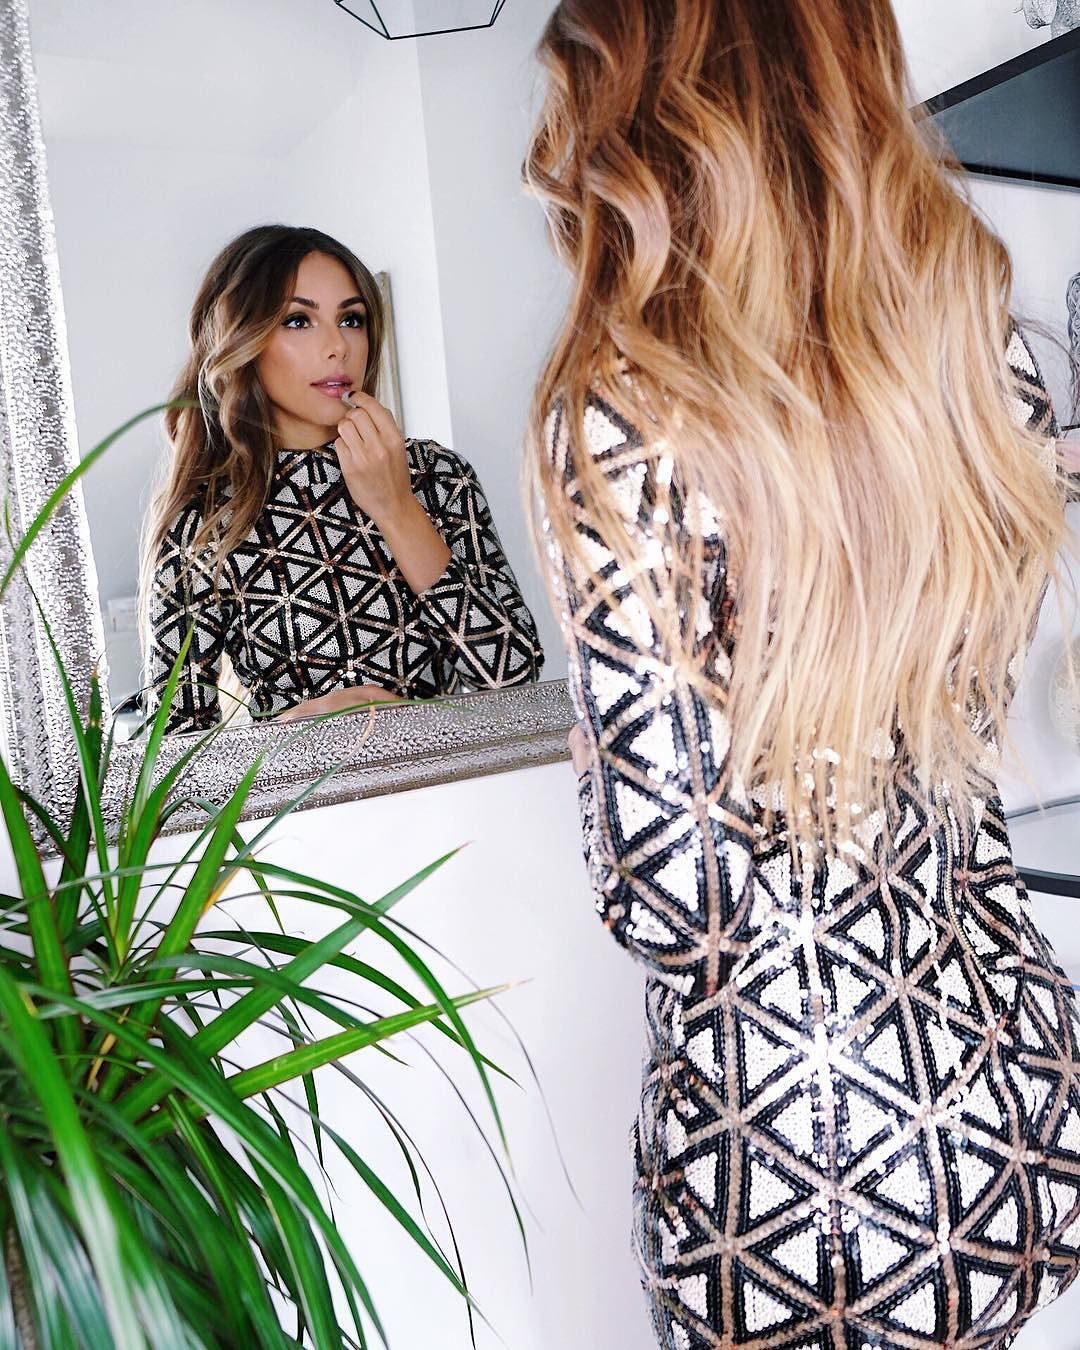 25 Prom Hair Tips To Prep You And Your Tresses For The Big Night Lulus Com Fashion Blog